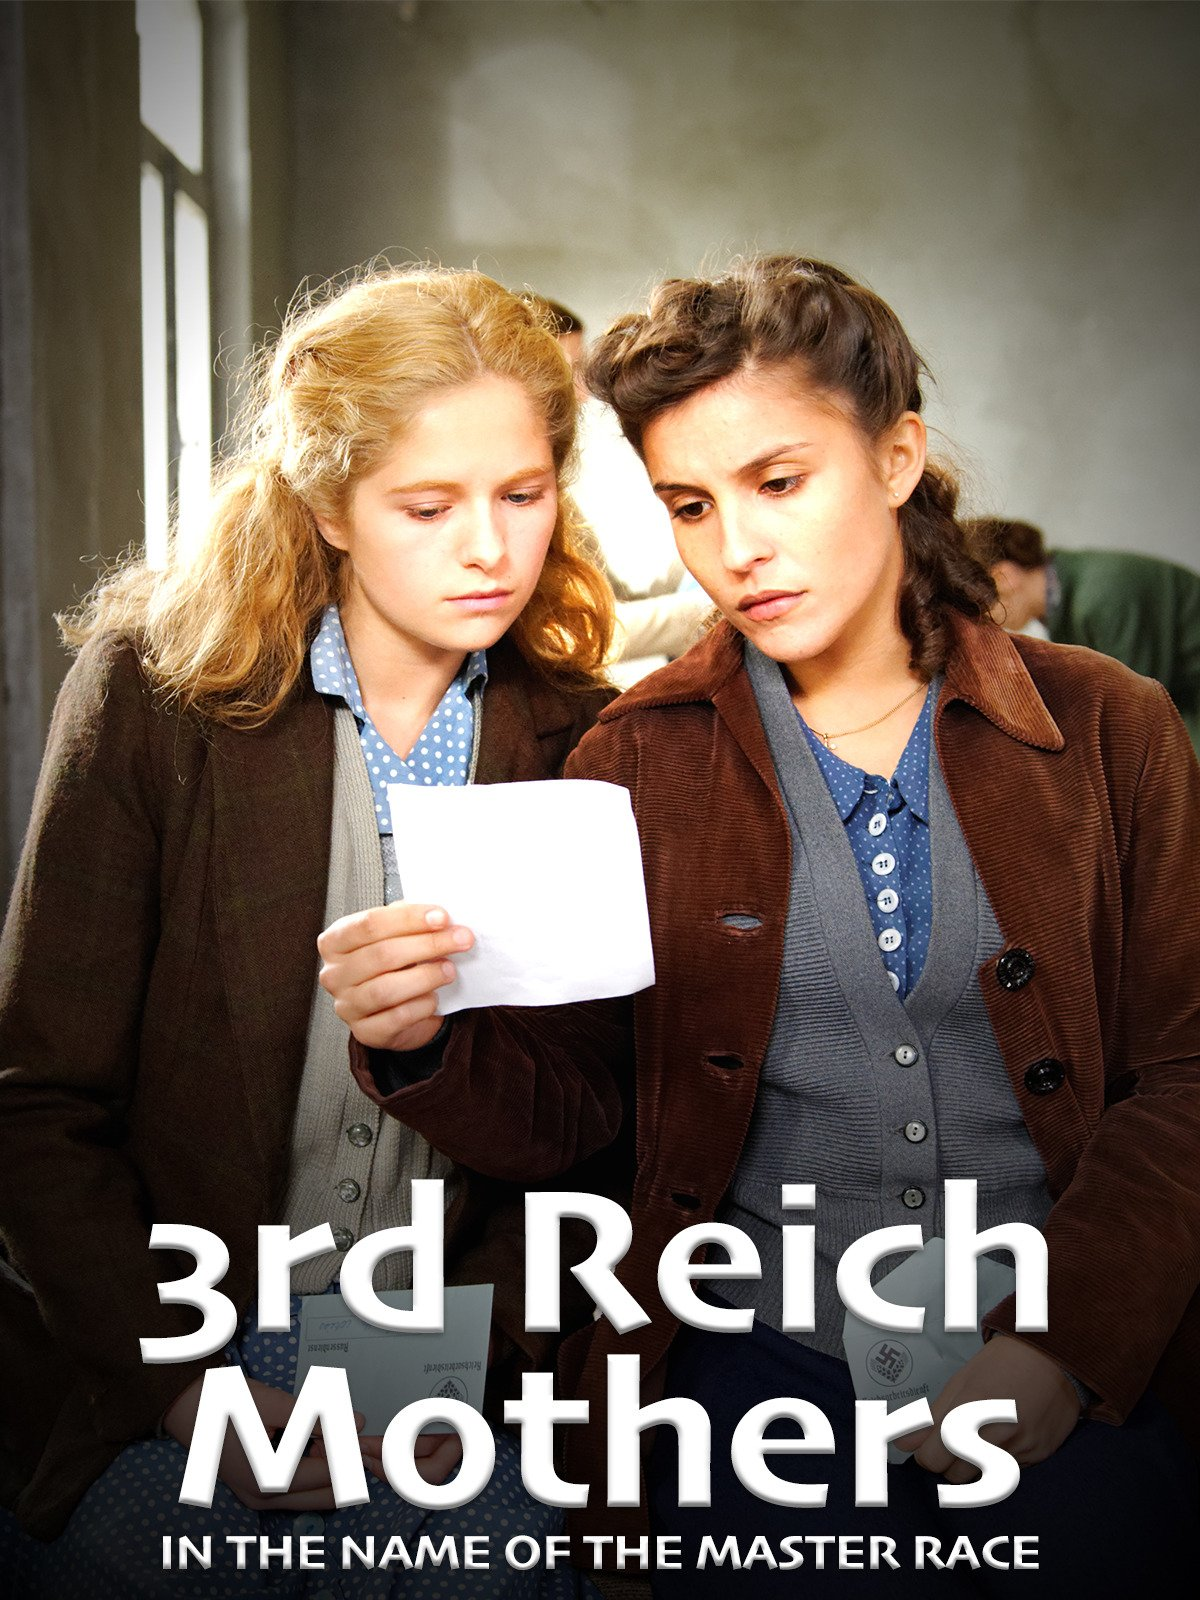 3rd Reich Mothers